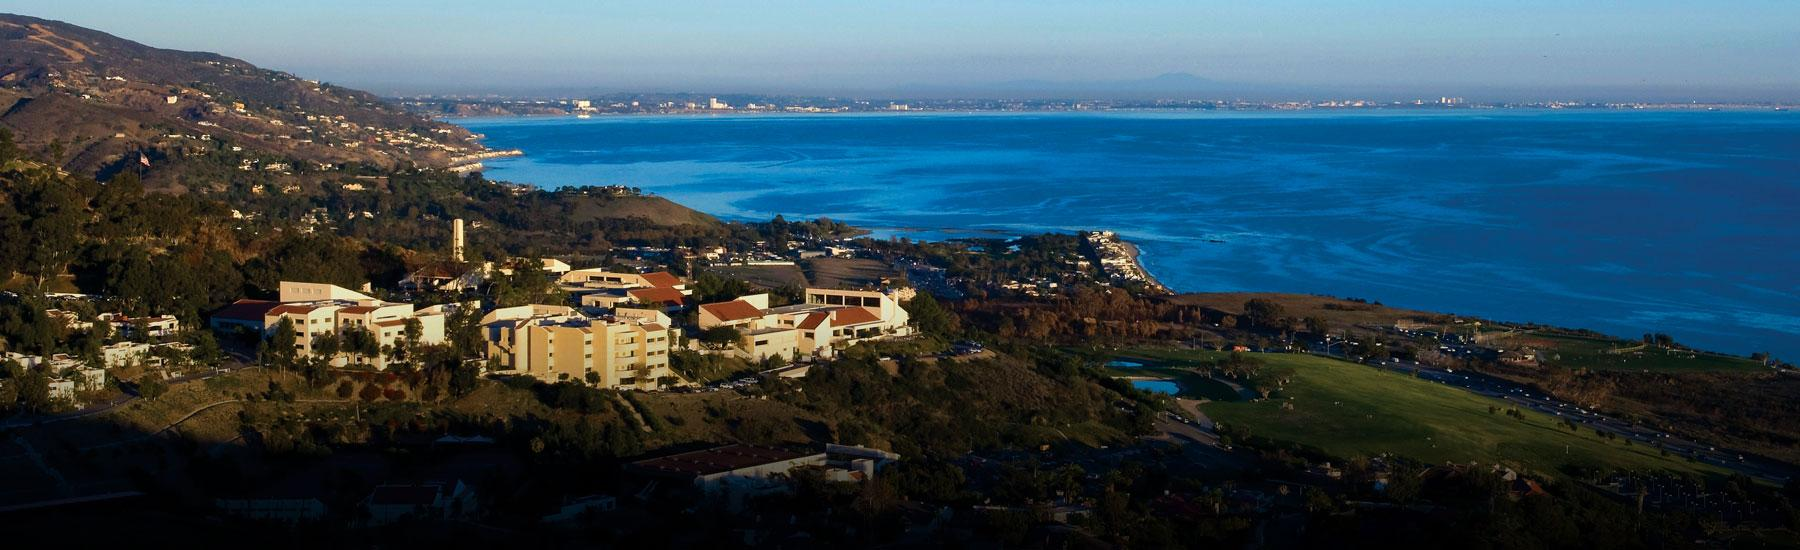 pepperdine_all-things-malibu